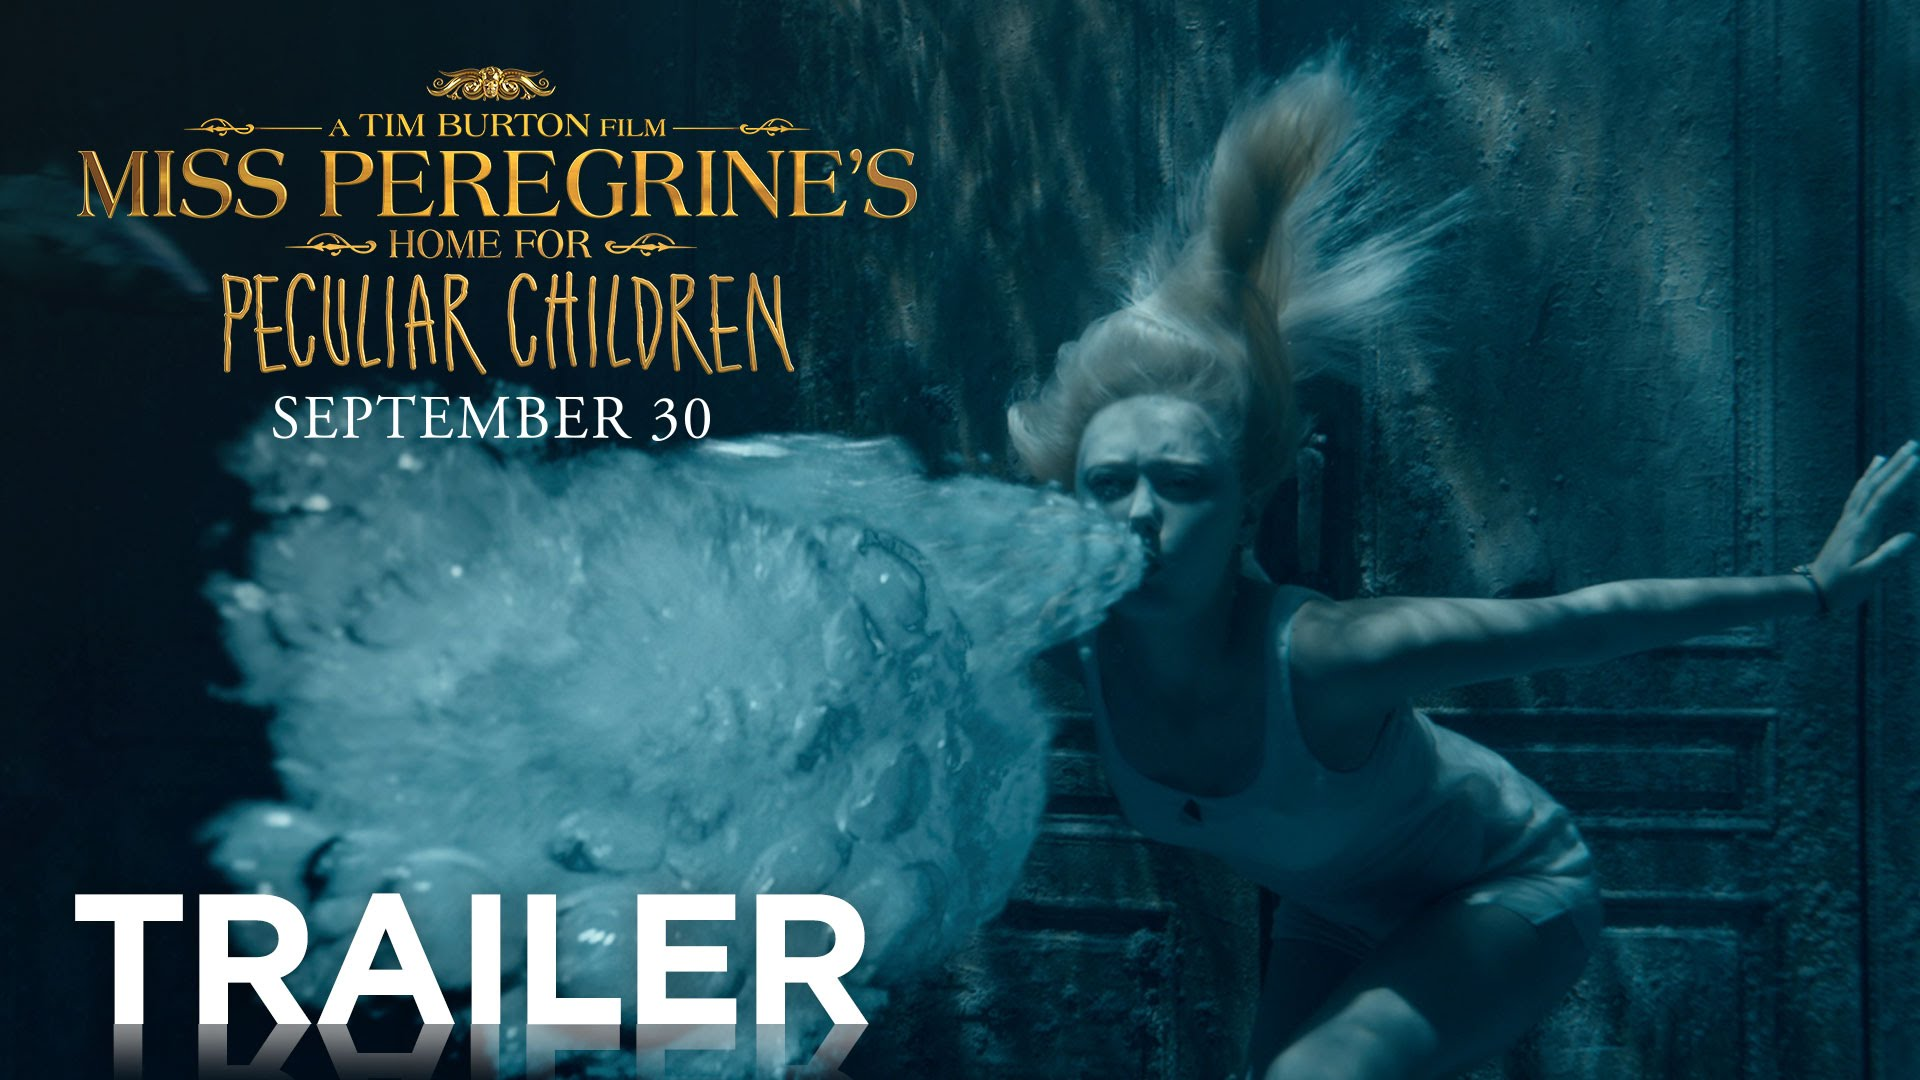 Miss Peregrine's Home for Peculiar Children | Official Trailer 2 [HD]